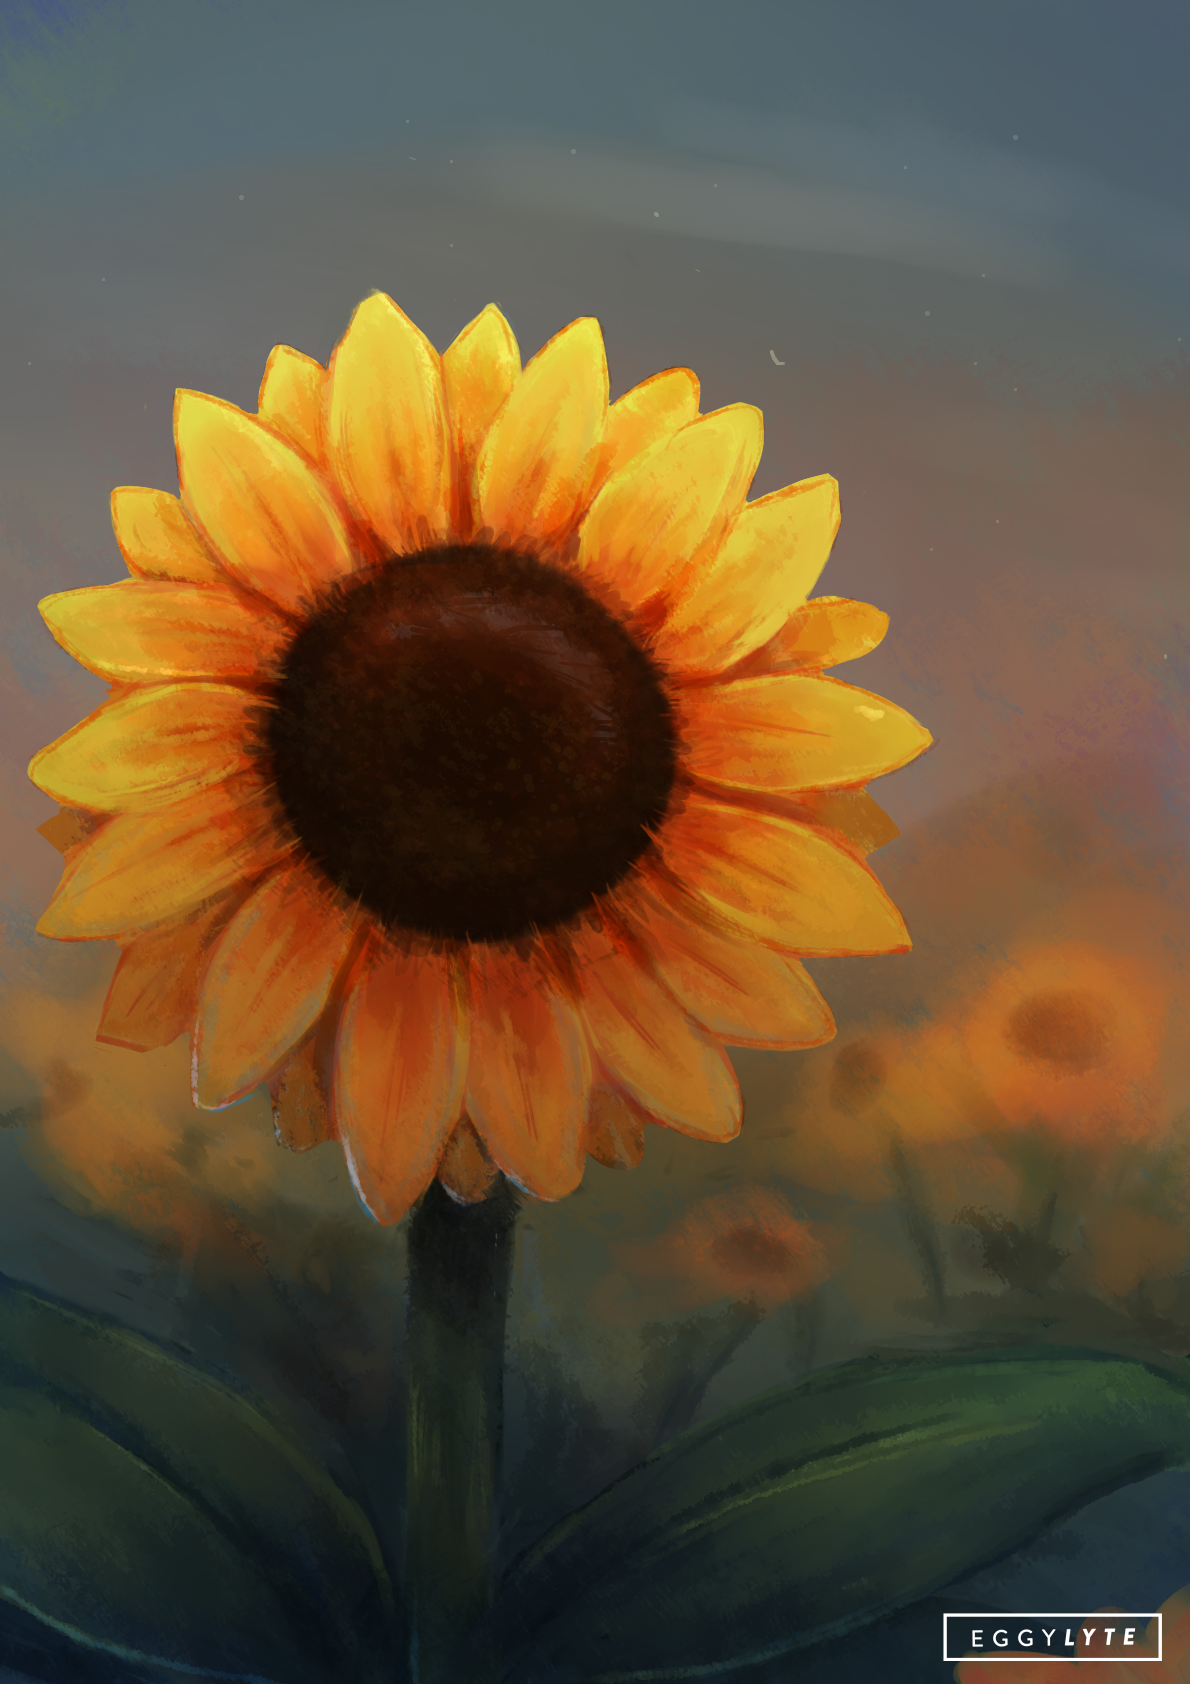 Sunflower, a drawing by Eggylyte